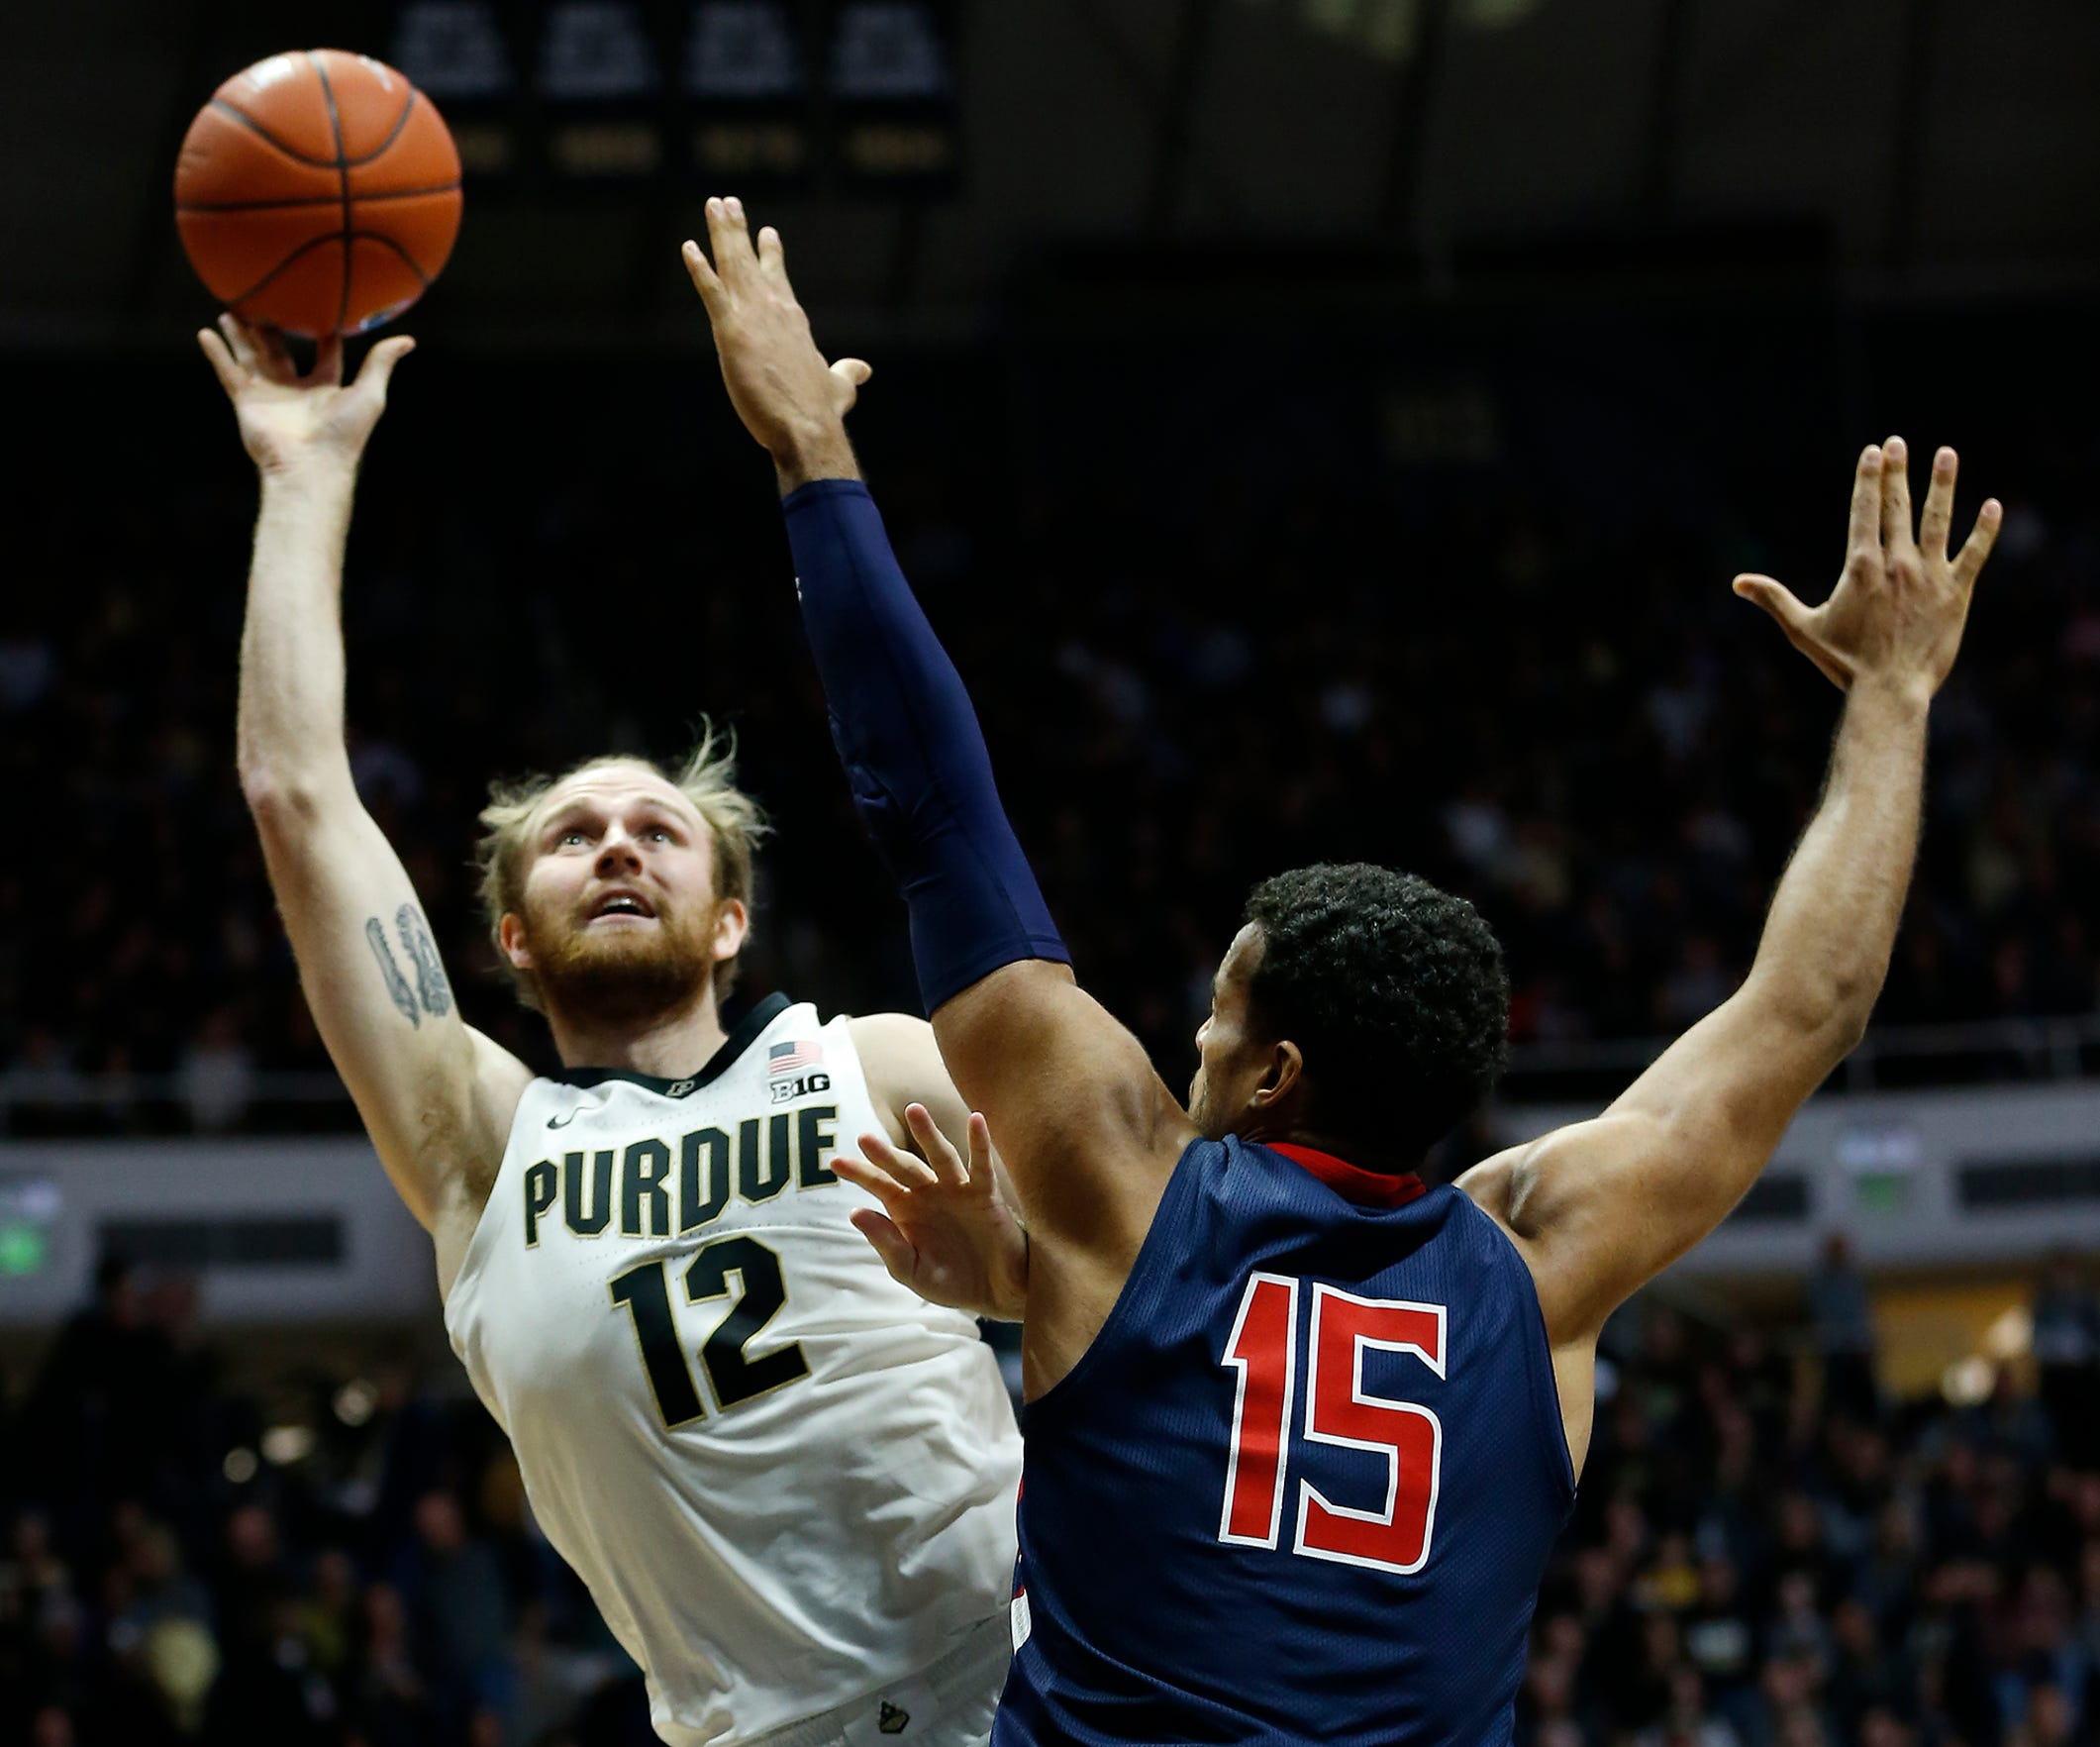 Evan Boudreaux of Purdue with a shot over Yannis Mendy of Robert Morris Friday, November 23, 2018, at Mackey Arena. Purdue defeated Robert Morris 84-46.